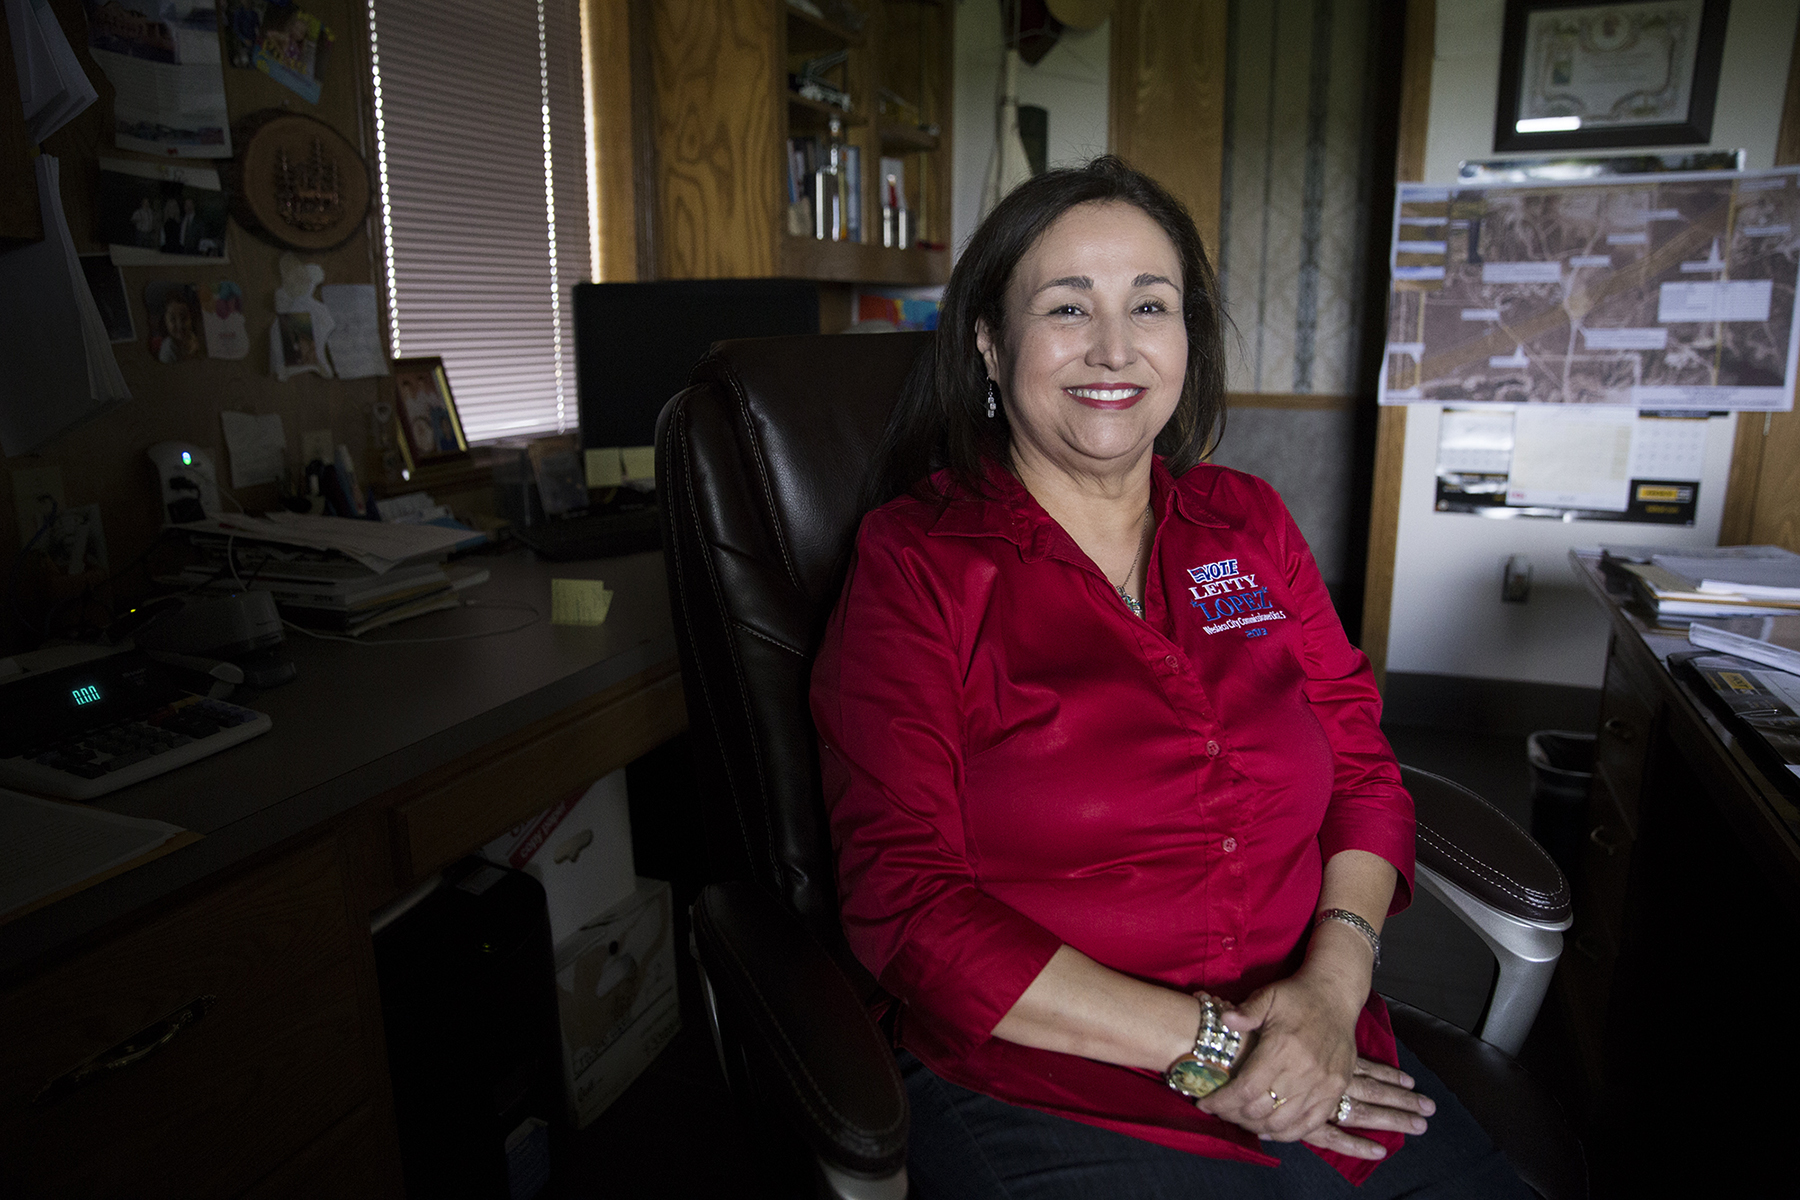 Letty Lopez, a city commissioner in Weslaco, Texas, poses for a portrait in her office. Although she originally ran for commissioner in November 2013, it wasn't until a special election two years later that she could take the position. Lopez contested the 2013 election after falling short by 16 votes. She discovered elderly citizens had not filled out their mail-in ballots on their own. (Pinar Istek/News21)